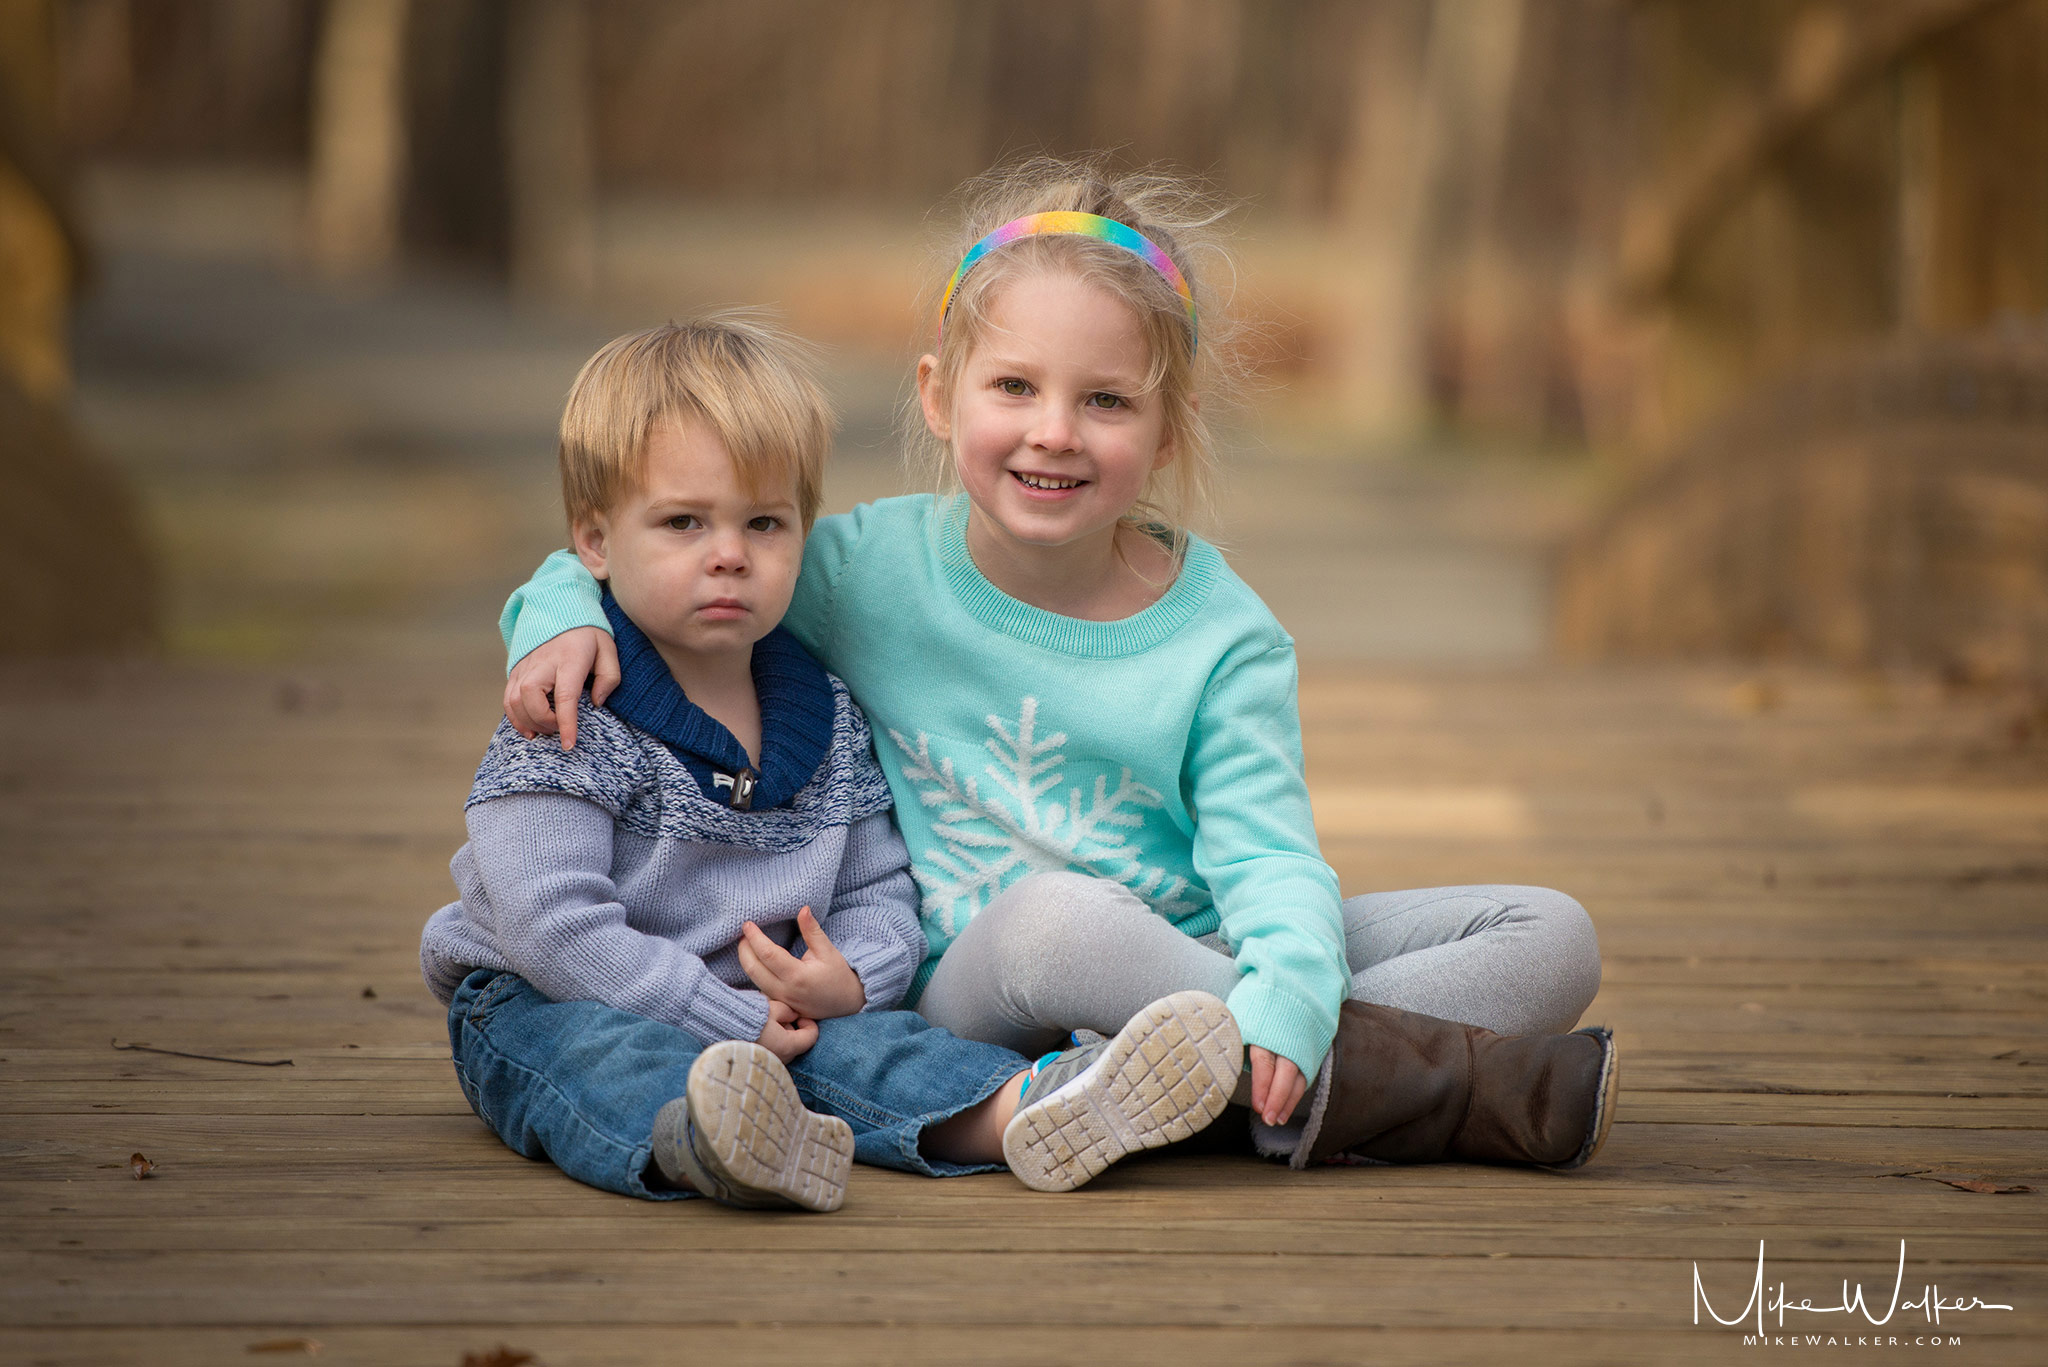 Two children posing. One is smiling. Family photography by Mike Walker.